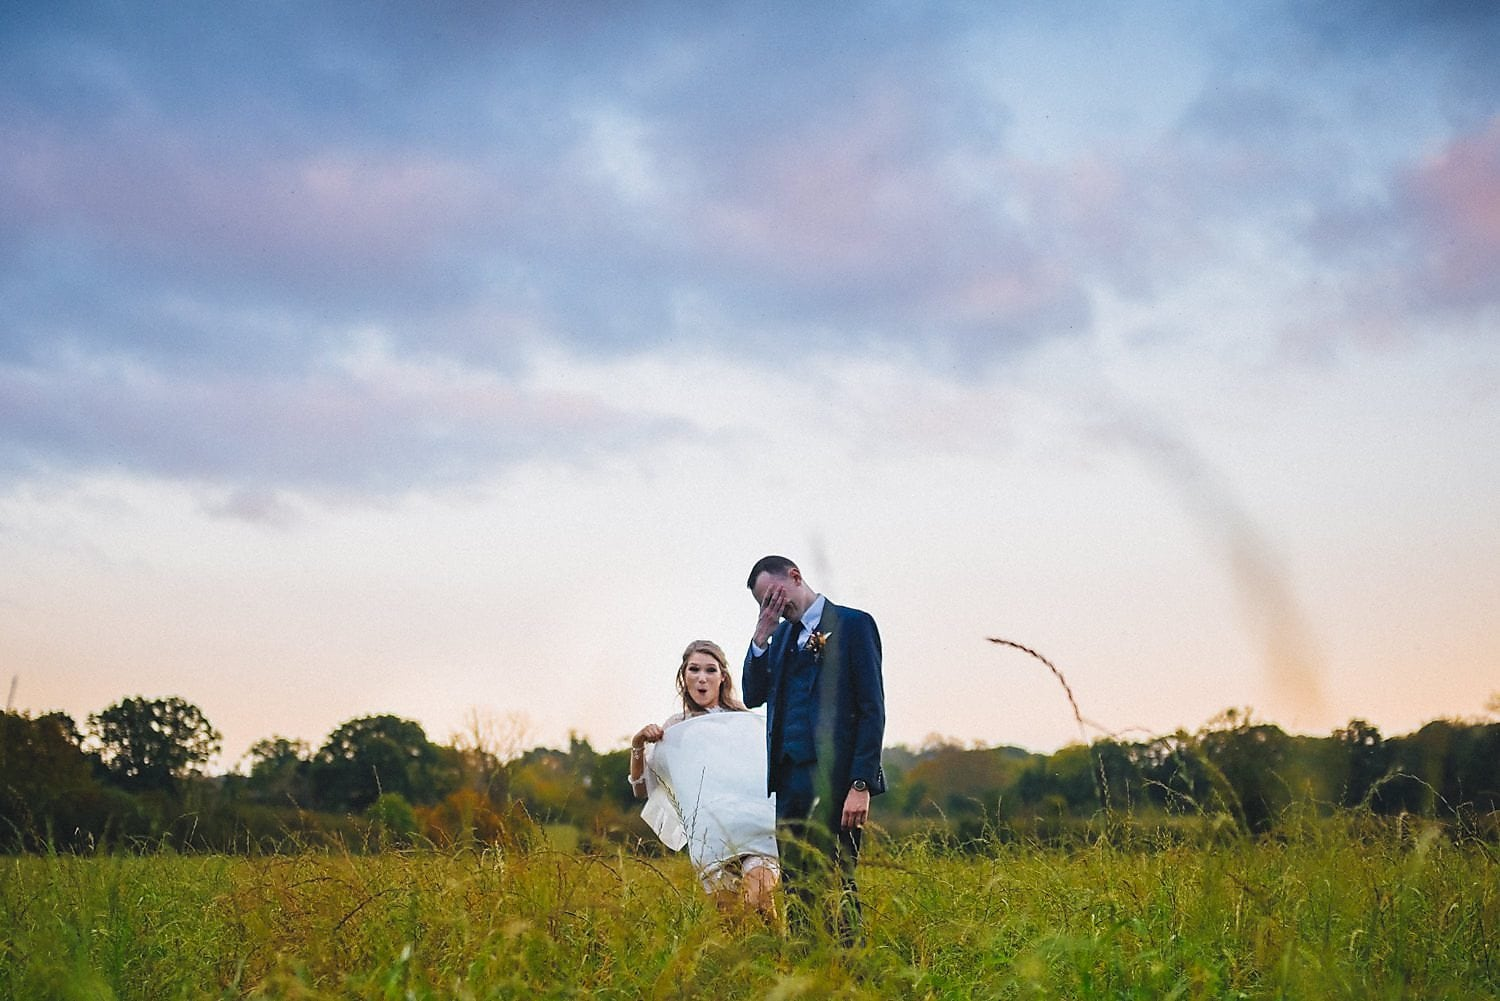 Bride and groom pose in a field at twilight. Bride jokingly lifts her dress while groom laughs and looks embarrassed.